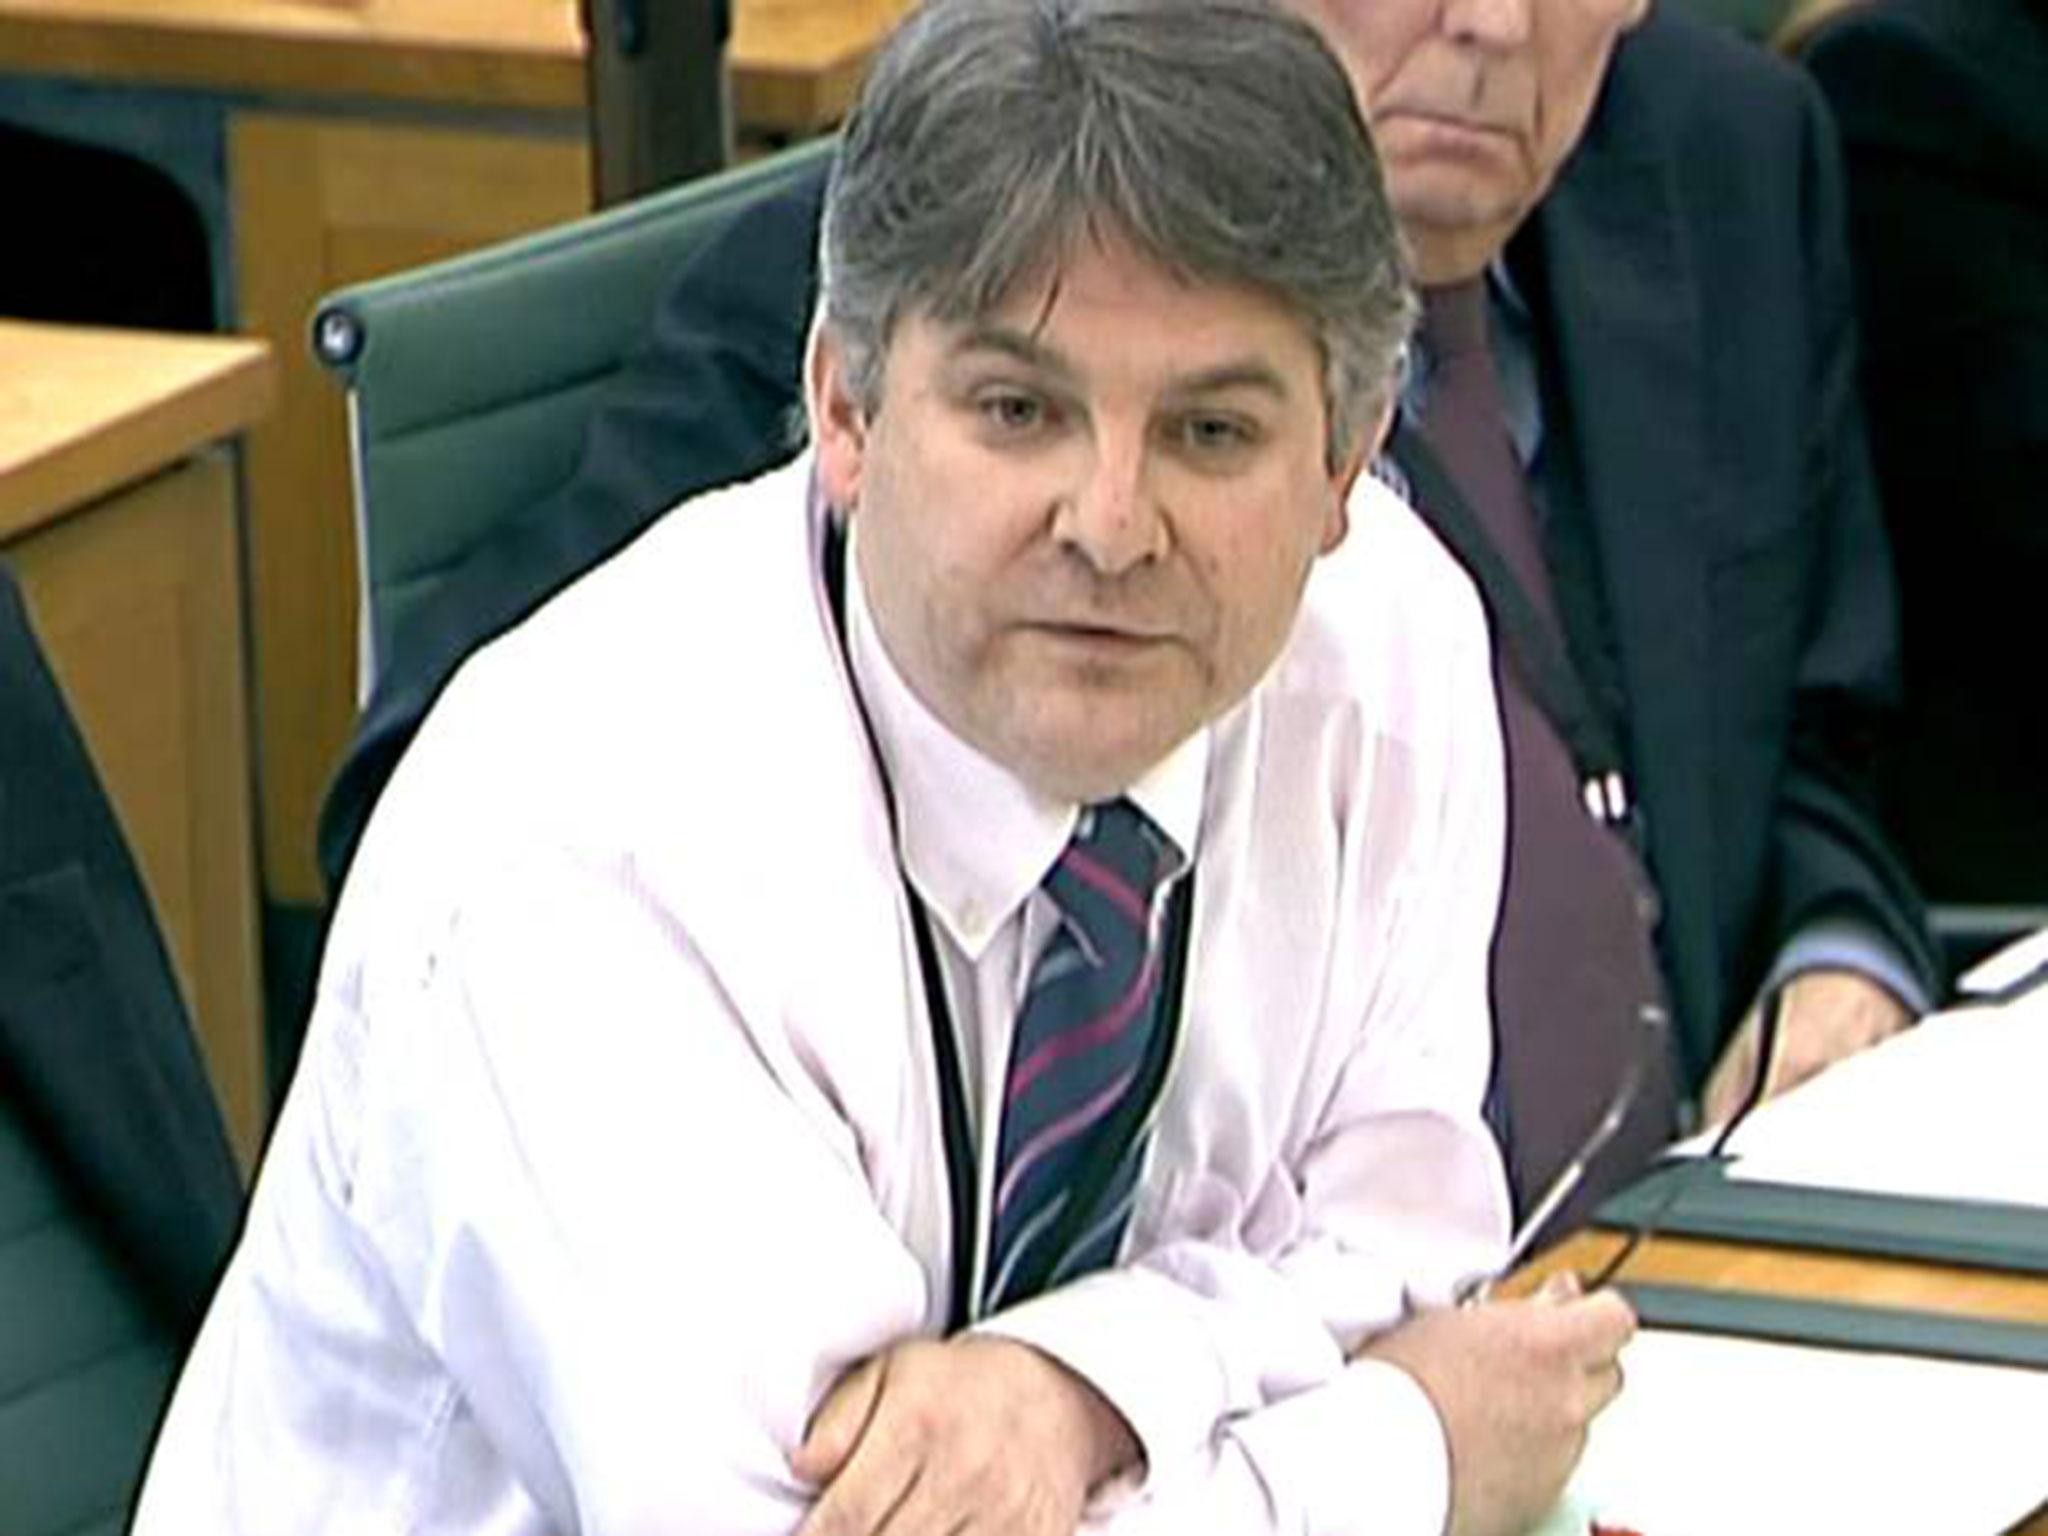 Here are some of the bills Tory MP Philip Davies has ...